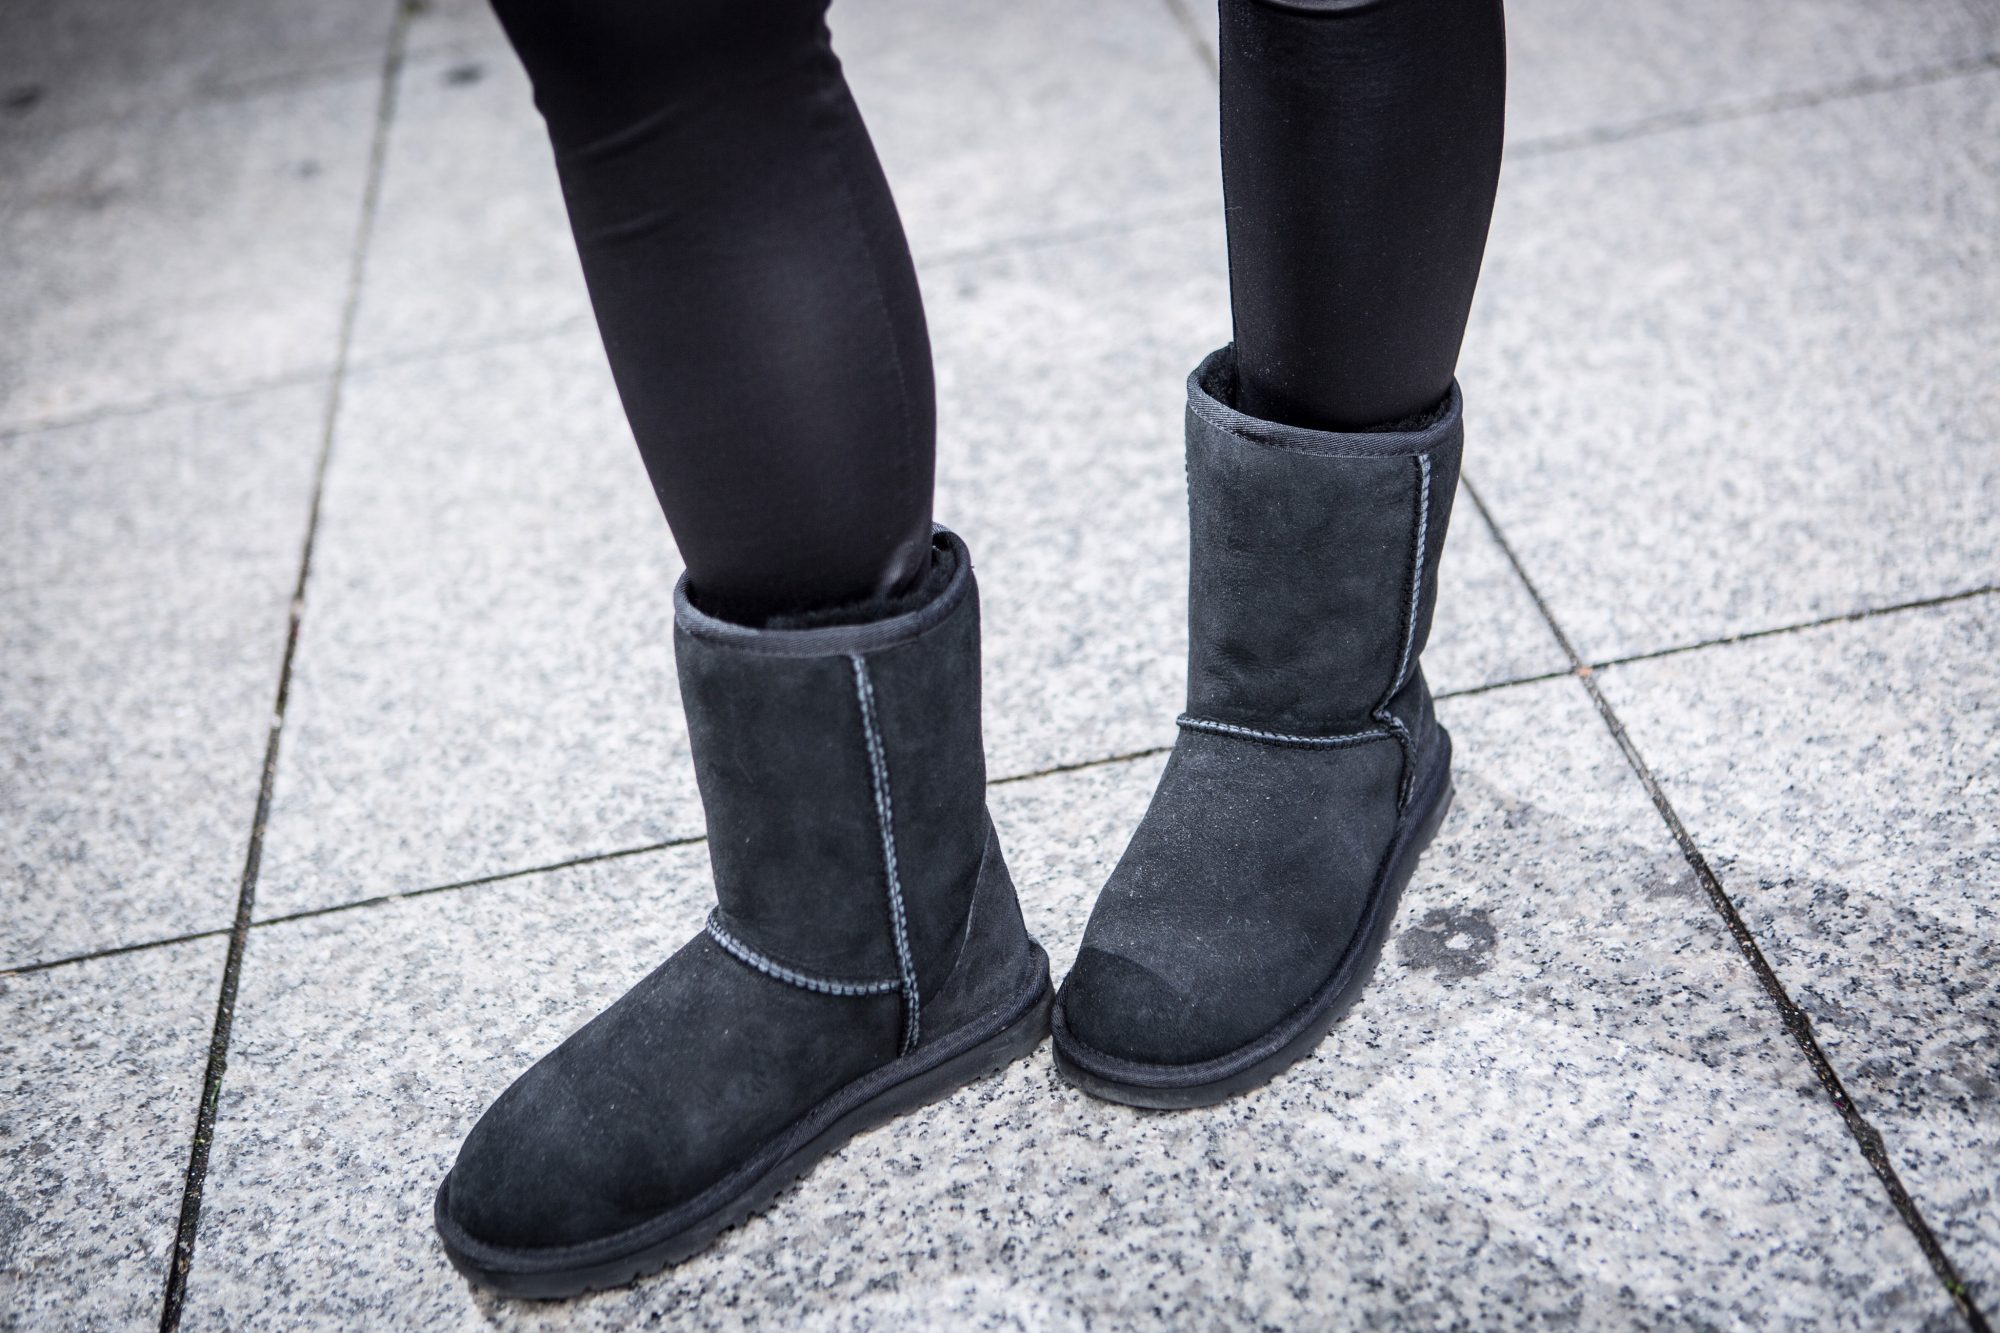 I Bought a New Pair of Uggs for the First Time Since Middle School — and I Have No Regrets